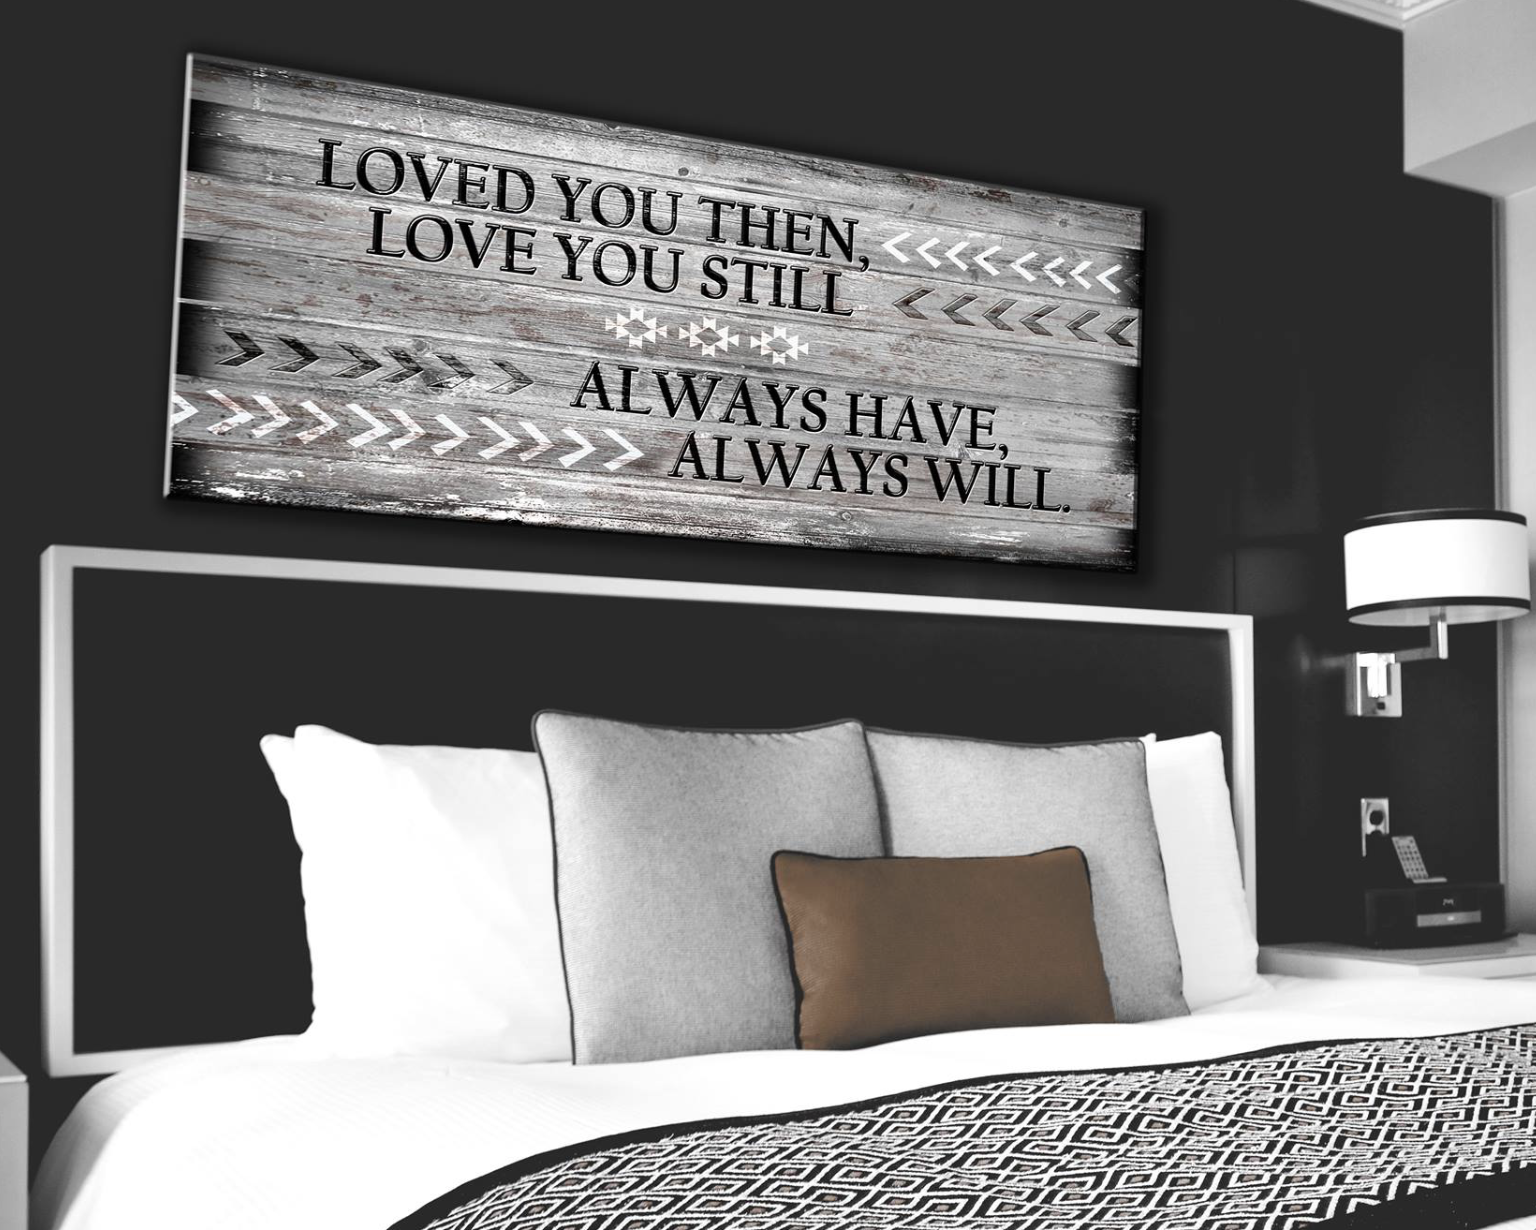 Make this for our bedroom uc arting ideas pinterest bedrooms